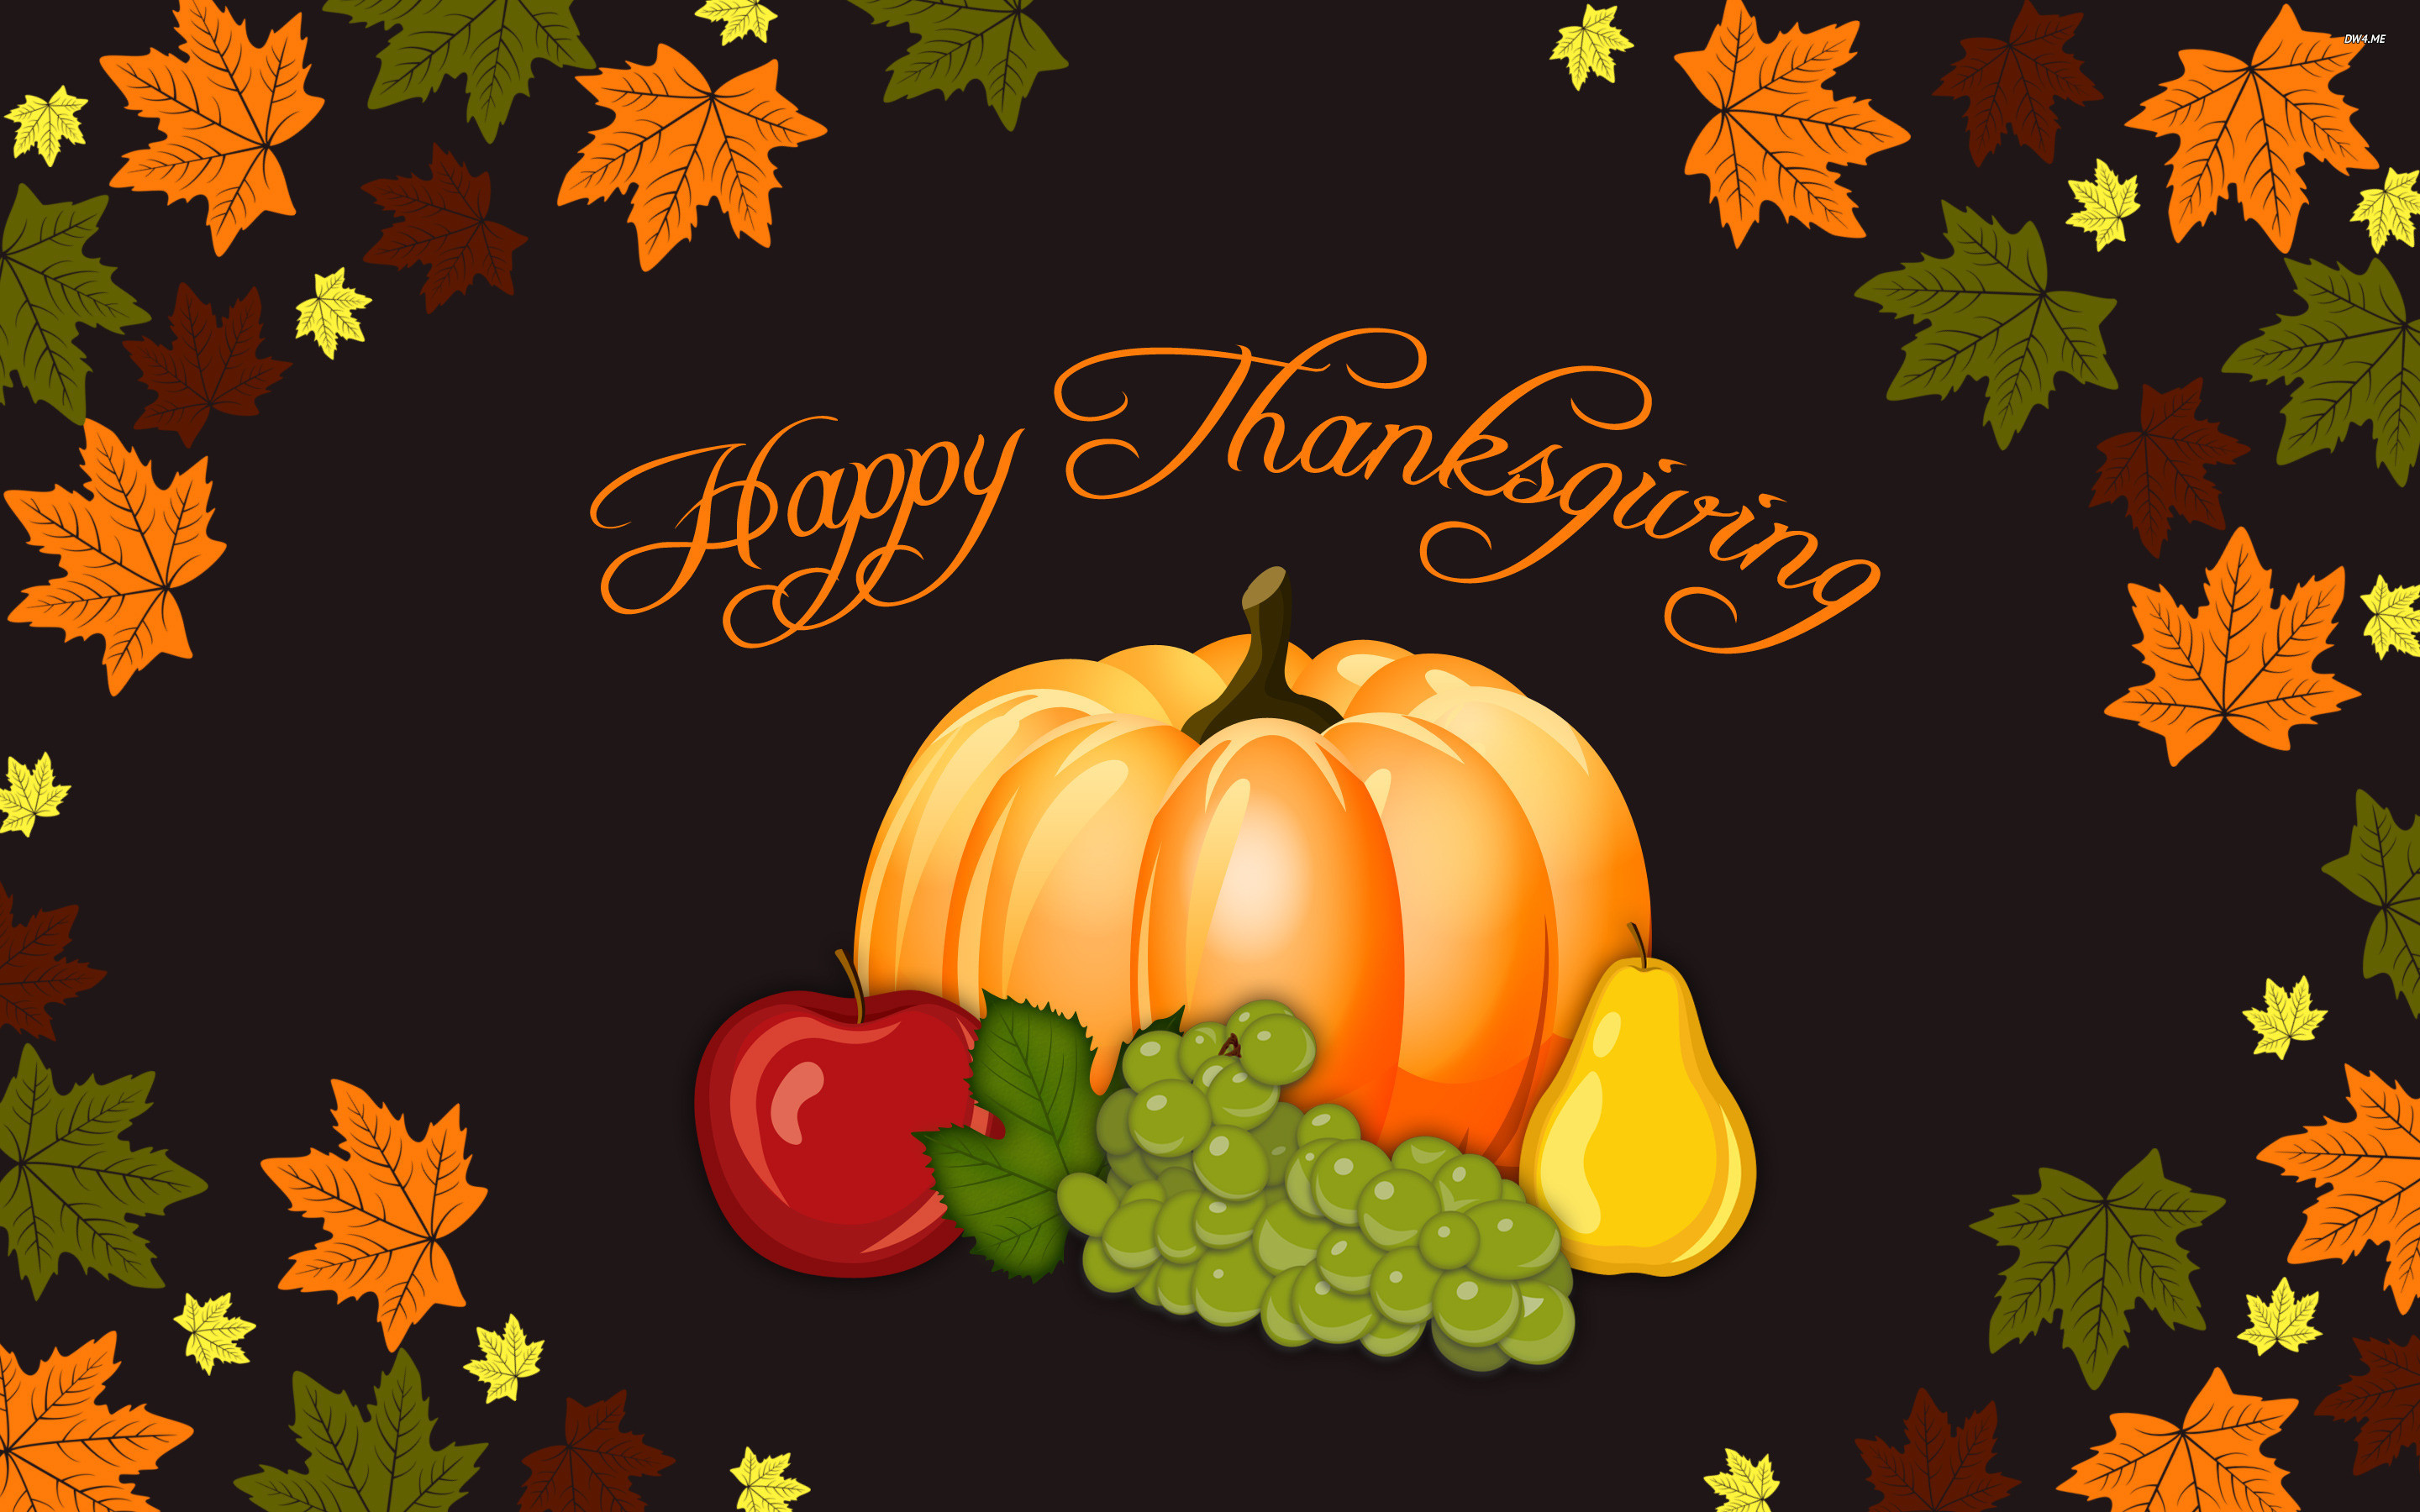 1920x1080 thanksgiving wallpaper: Thanksgiving Wallpapers And Screensavers (57+ Images